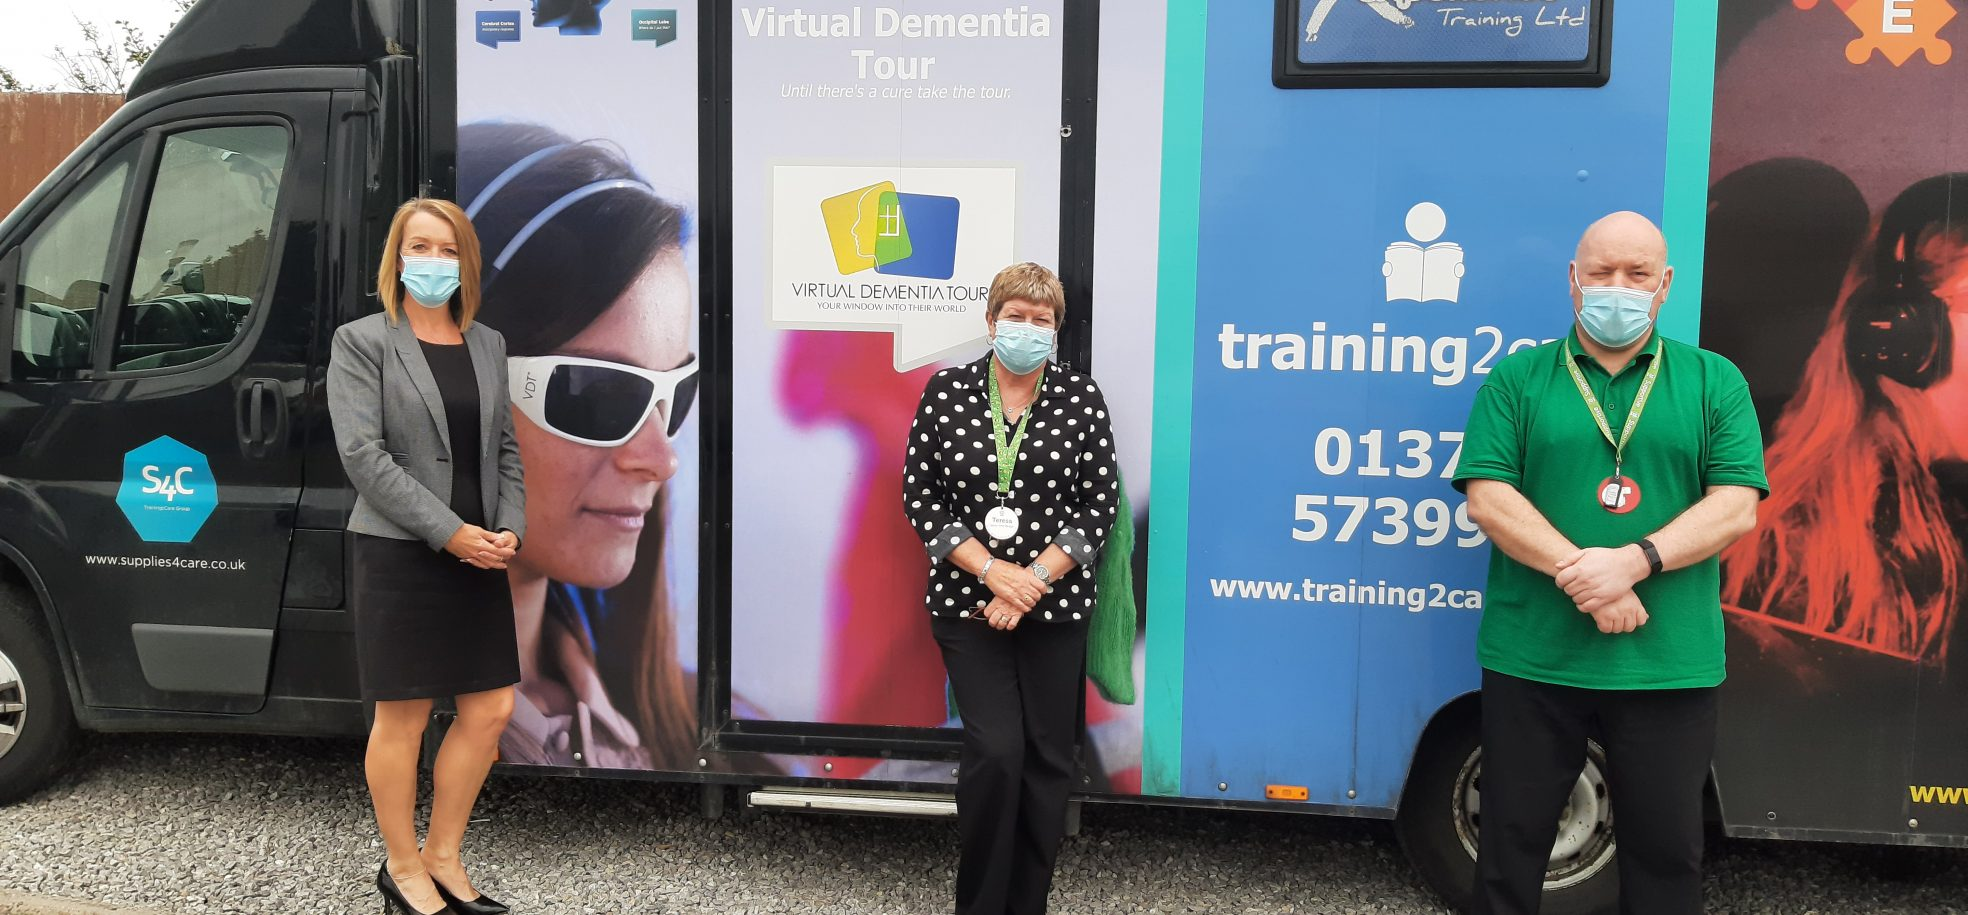 Home Manager Alison Aberdeen, Deputy Home Manager Teresa Picton and Home Trainer Ian Morgan with the Dementia Bus